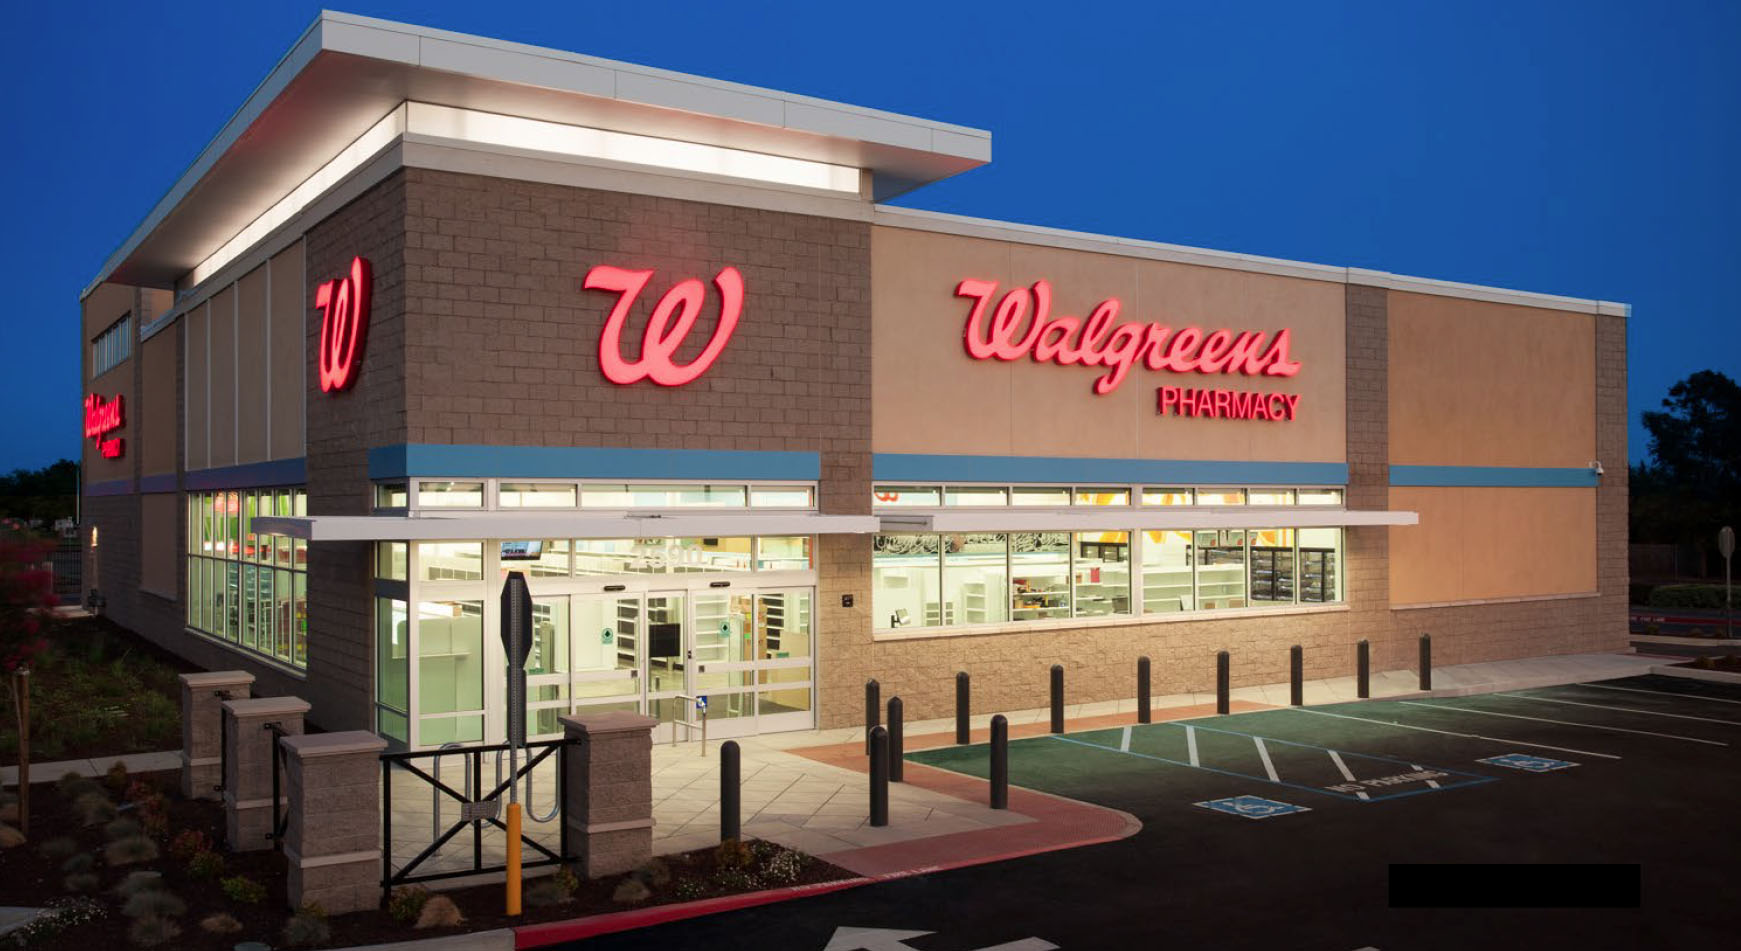 Net lease walgreens property profile and cap rates the boulder group net lease walgreens kristyandbryce Gallery